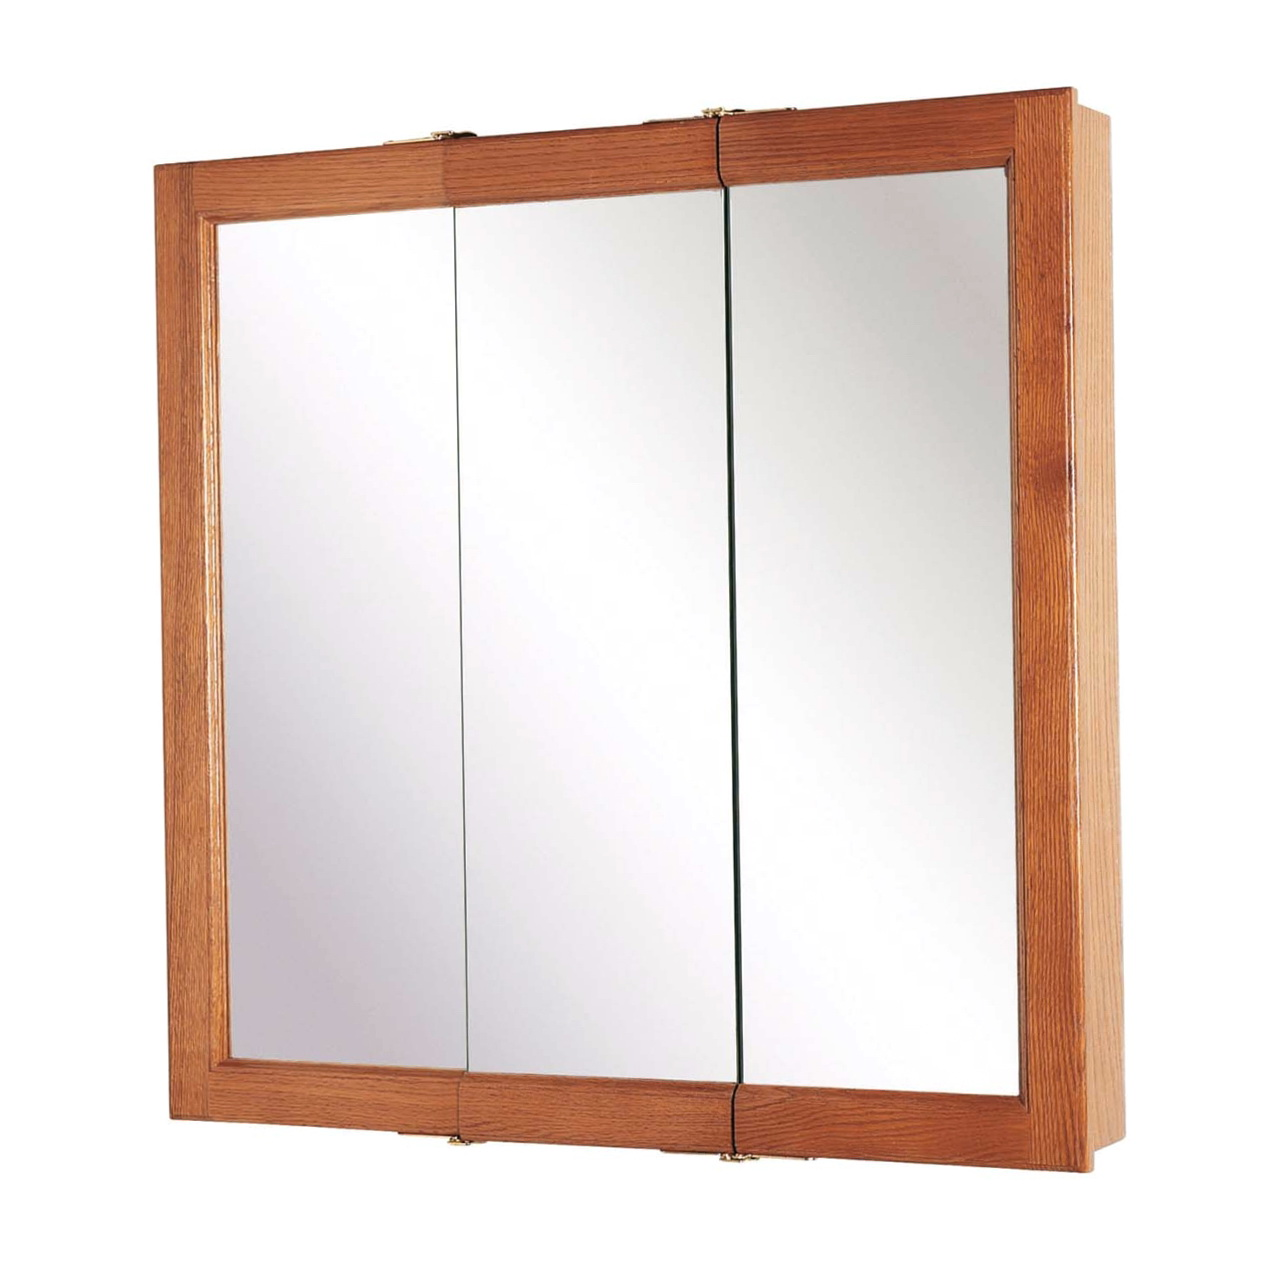 Bathroom Medicine Cabinets With Mirrors Ikea Home Design